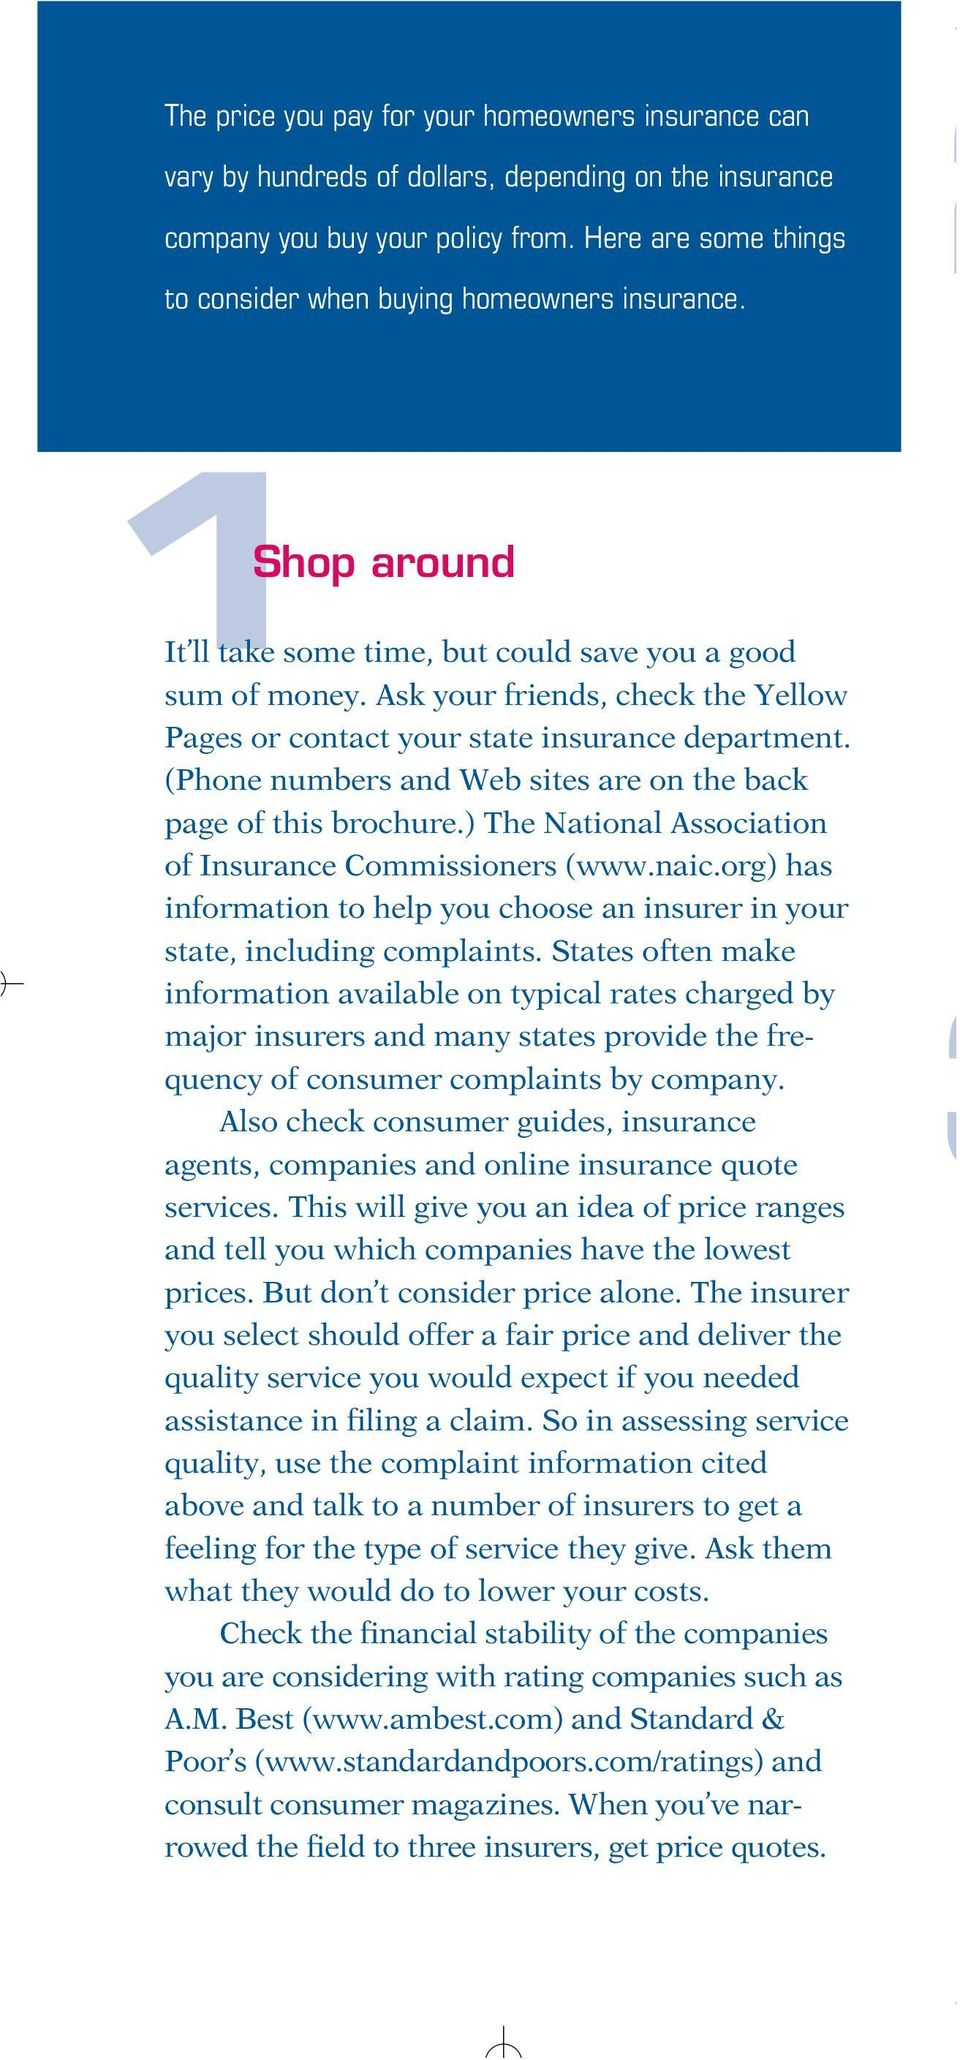 Ask your friends, check the Yellow Pages or contact your state insurance department. (Phone numbers and Web sites are on the back page of this brochure.